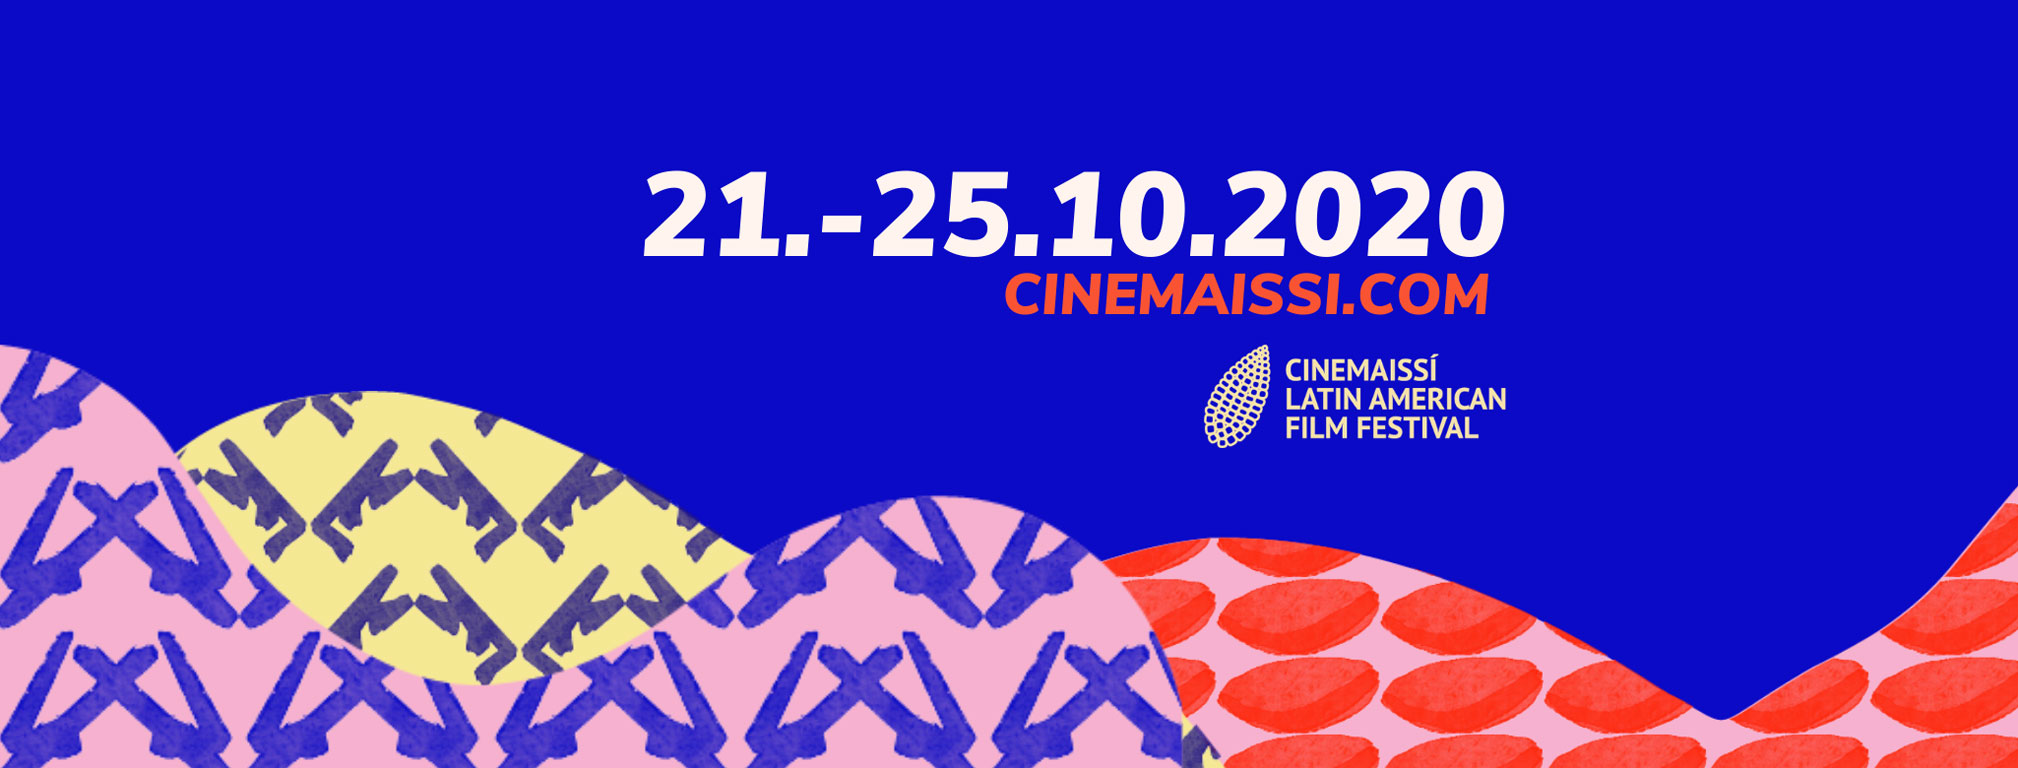 Link to event Cinemaissí 2020